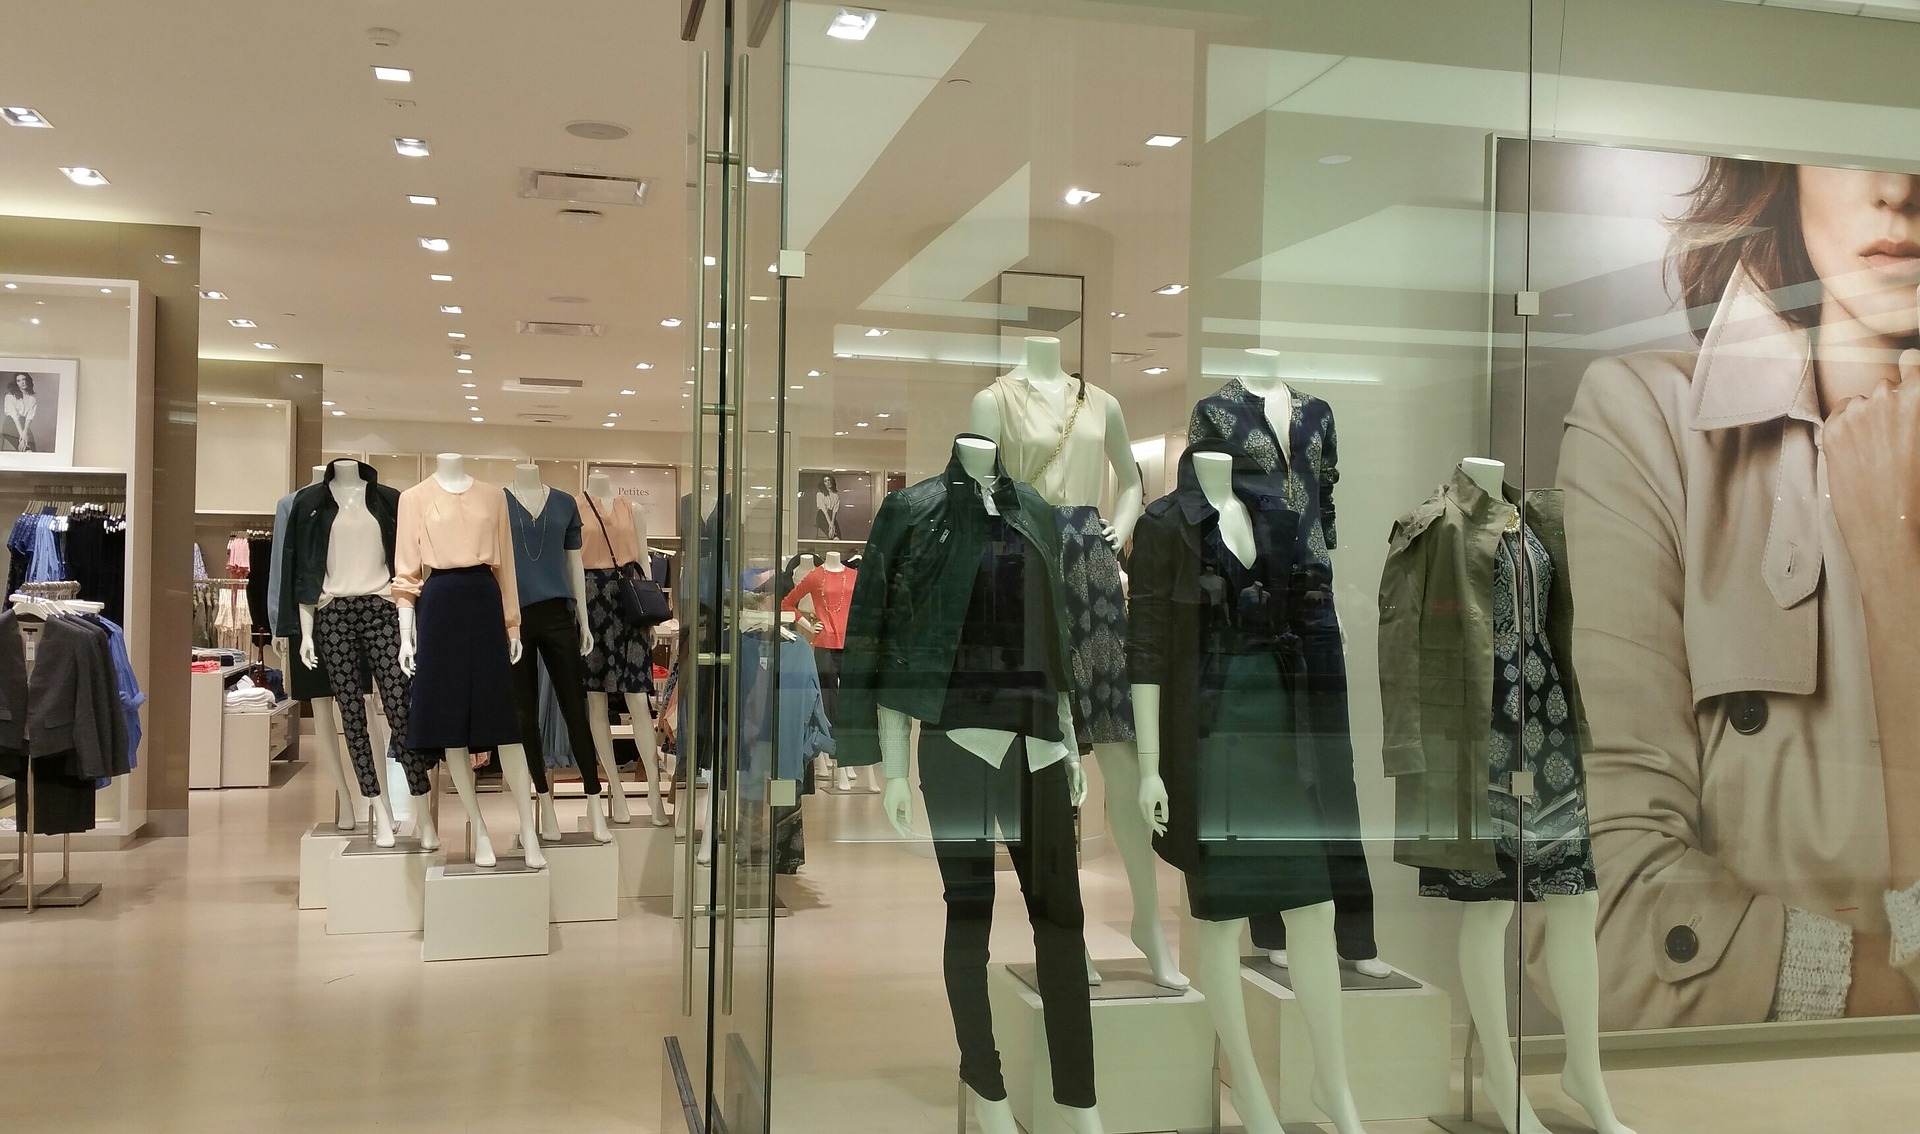 Commercial pest management includes all types of retail stores including clothing department stores